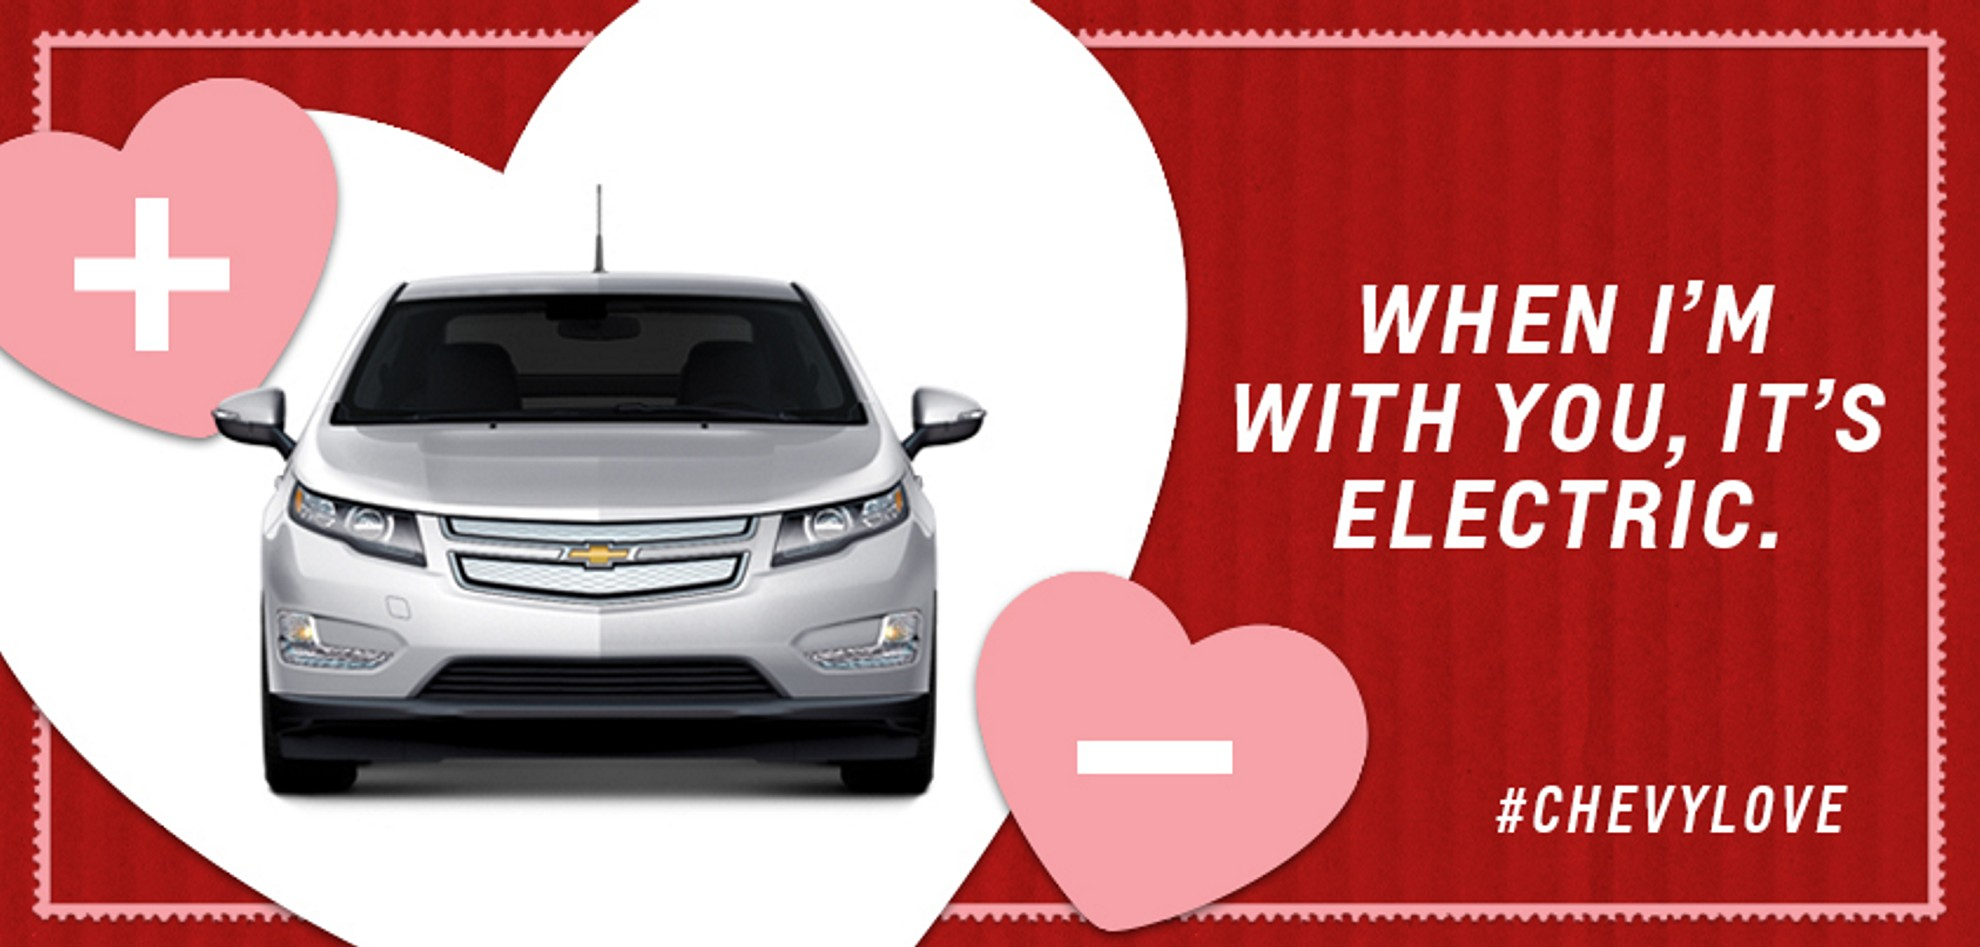 Valentines Day Chevrolet Gets Lots Of Love From Fans On